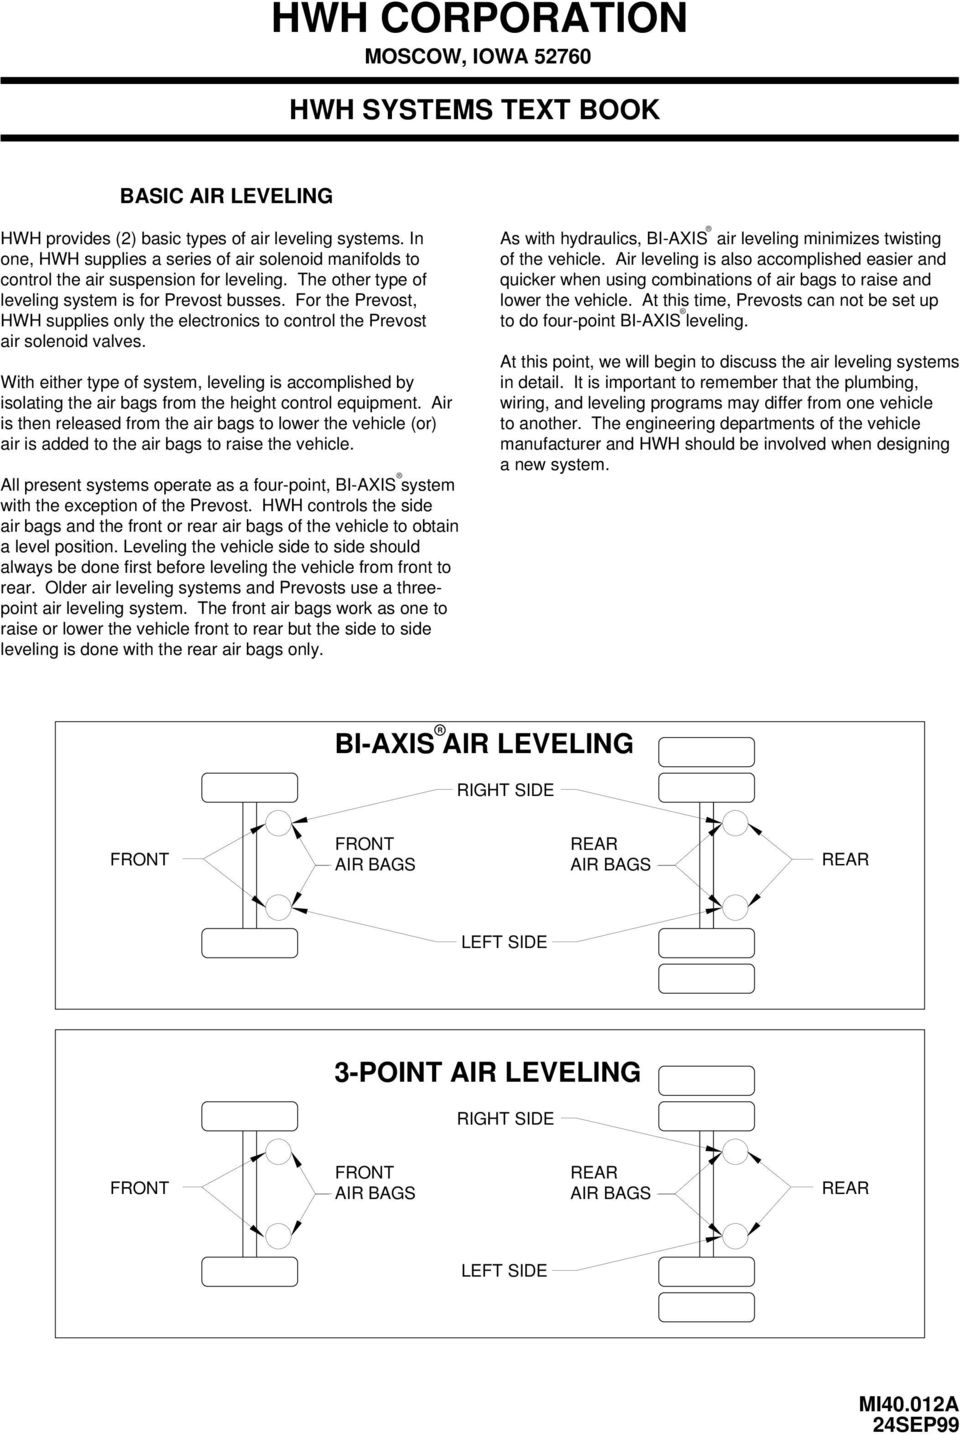 Hwh Air Leveling Systems Text Book Corporation 2096 Moscow Road Volvo 960 1994 Instrument Cluster Wiring Diagram And Ambient Temperature Guide With Either Type Of System Is Accomplished By Isolating The Bags From